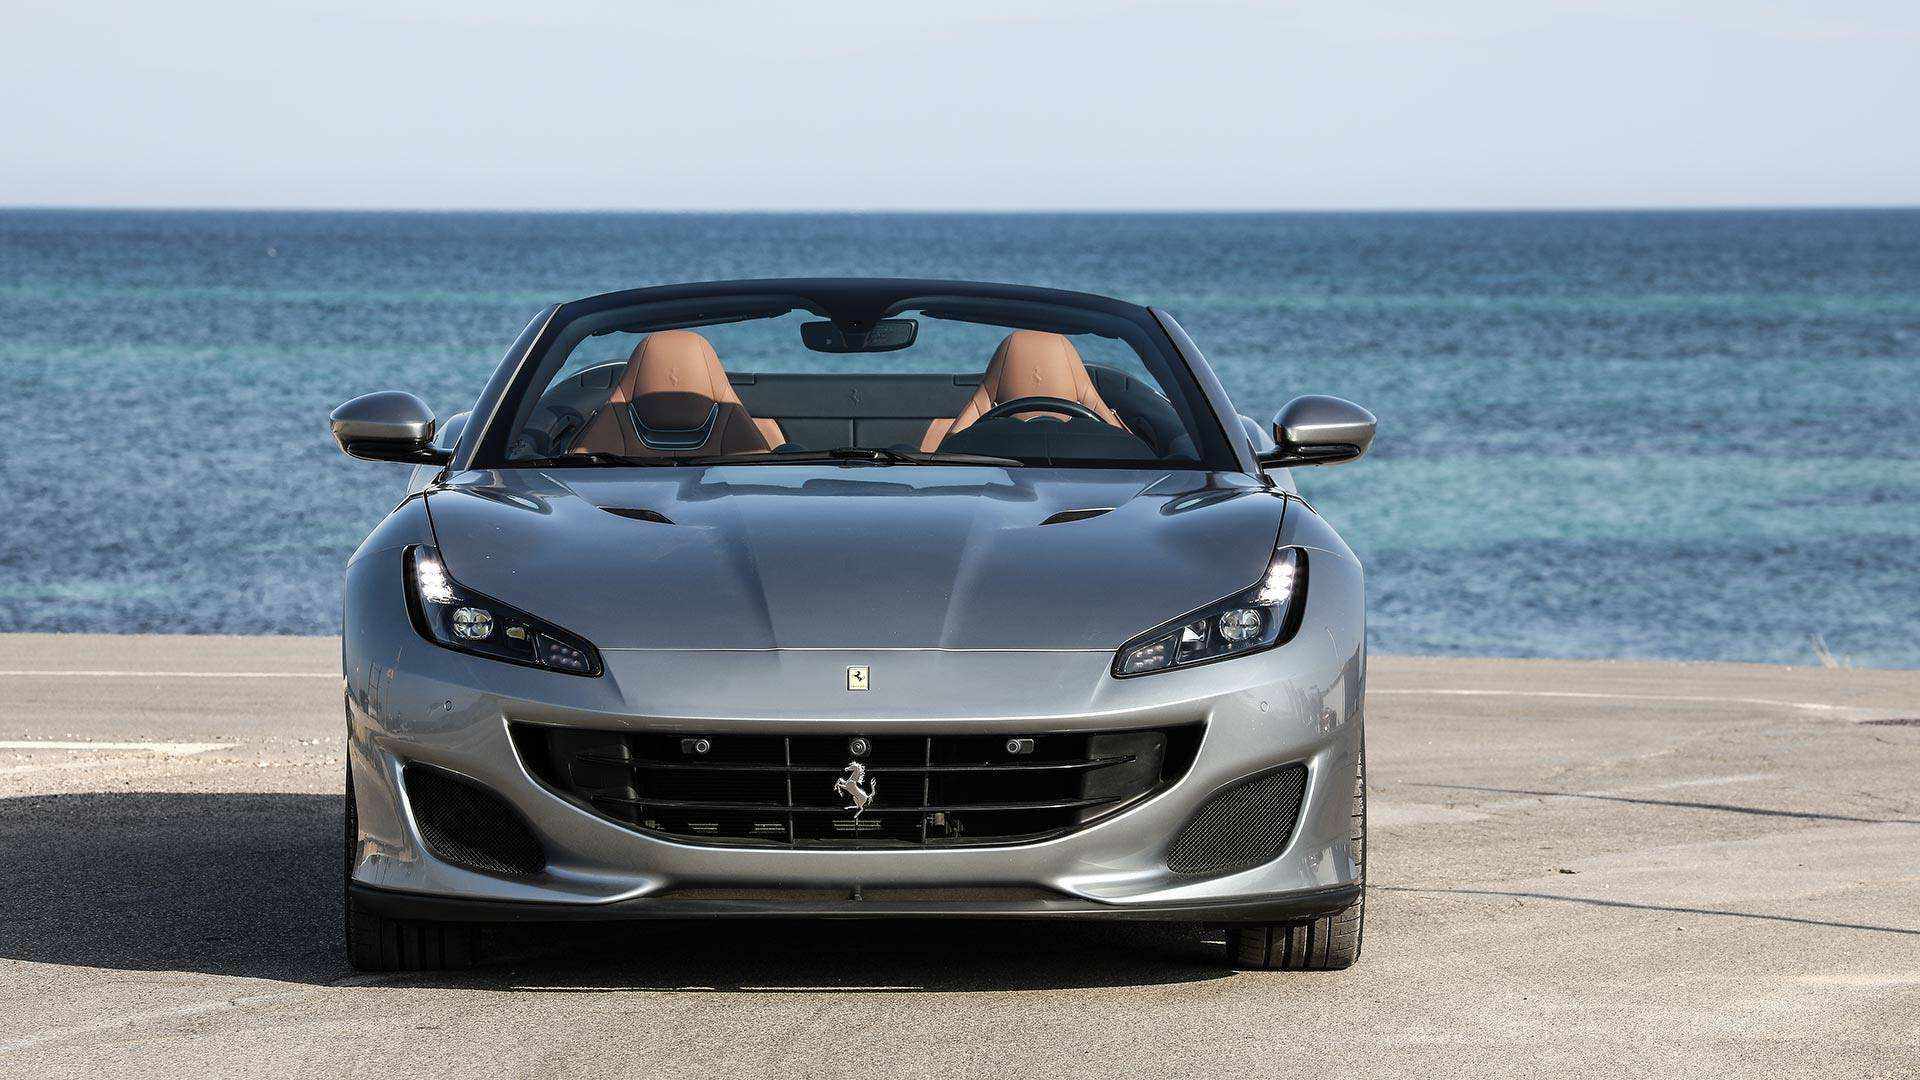 20 Best Review 2019 Ferrari Portofino Picture for 2019 Ferrari Portofino